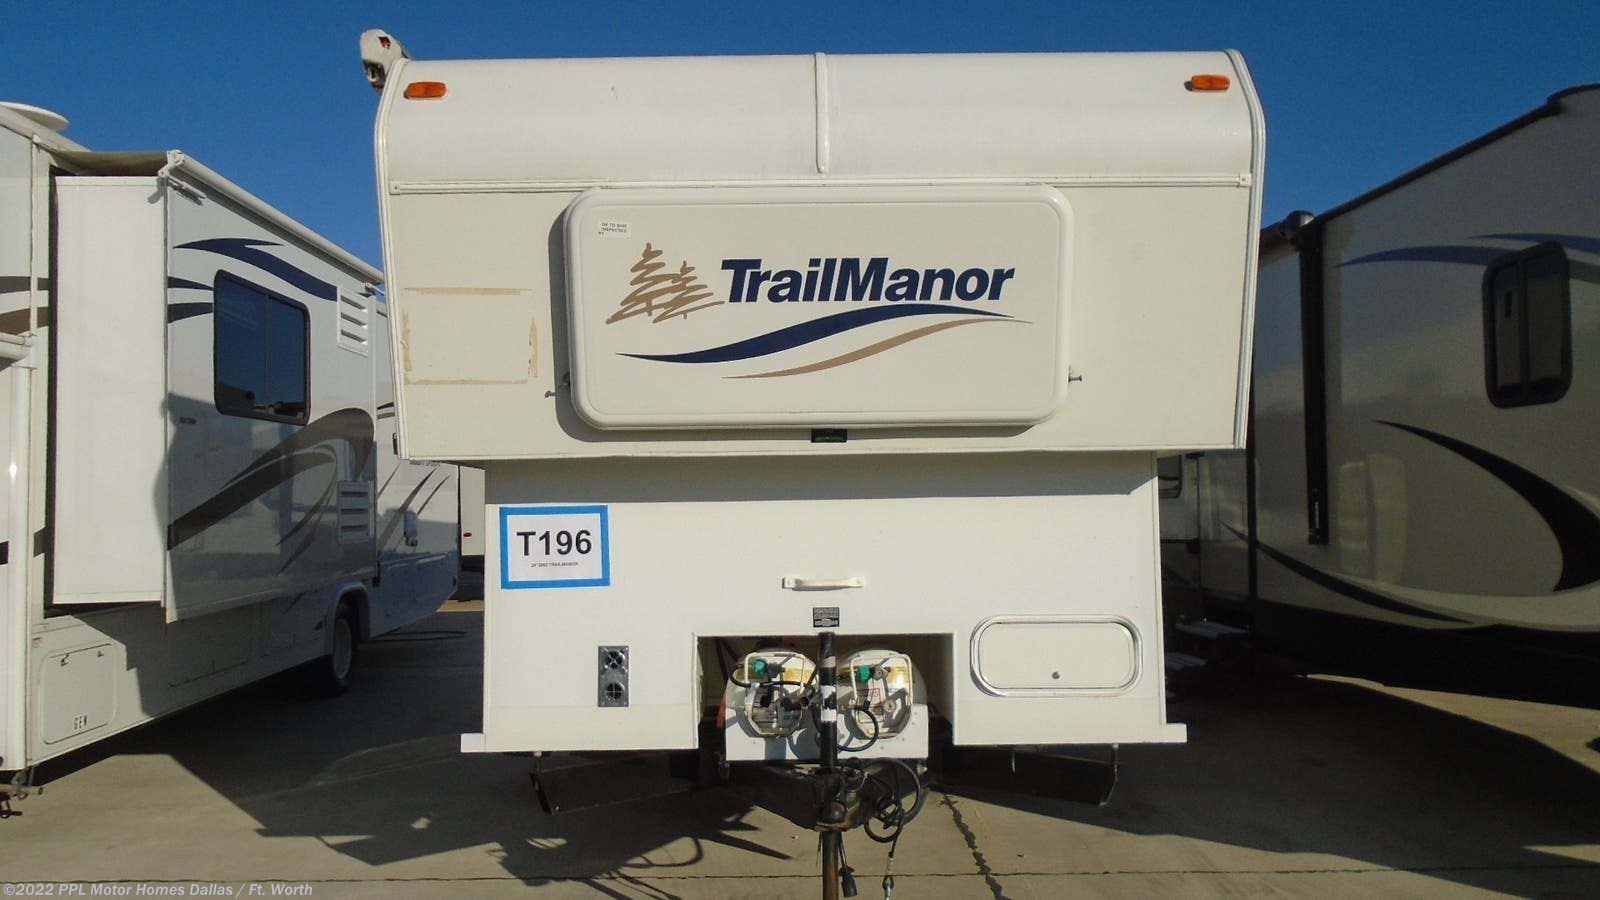 Lp Gas Cooktops For Rv On Sale Now Ppl Motor Homes >> 2002 Trailmanor Rv 2720 For Sale In Cleburne Tx 76033 T196cl